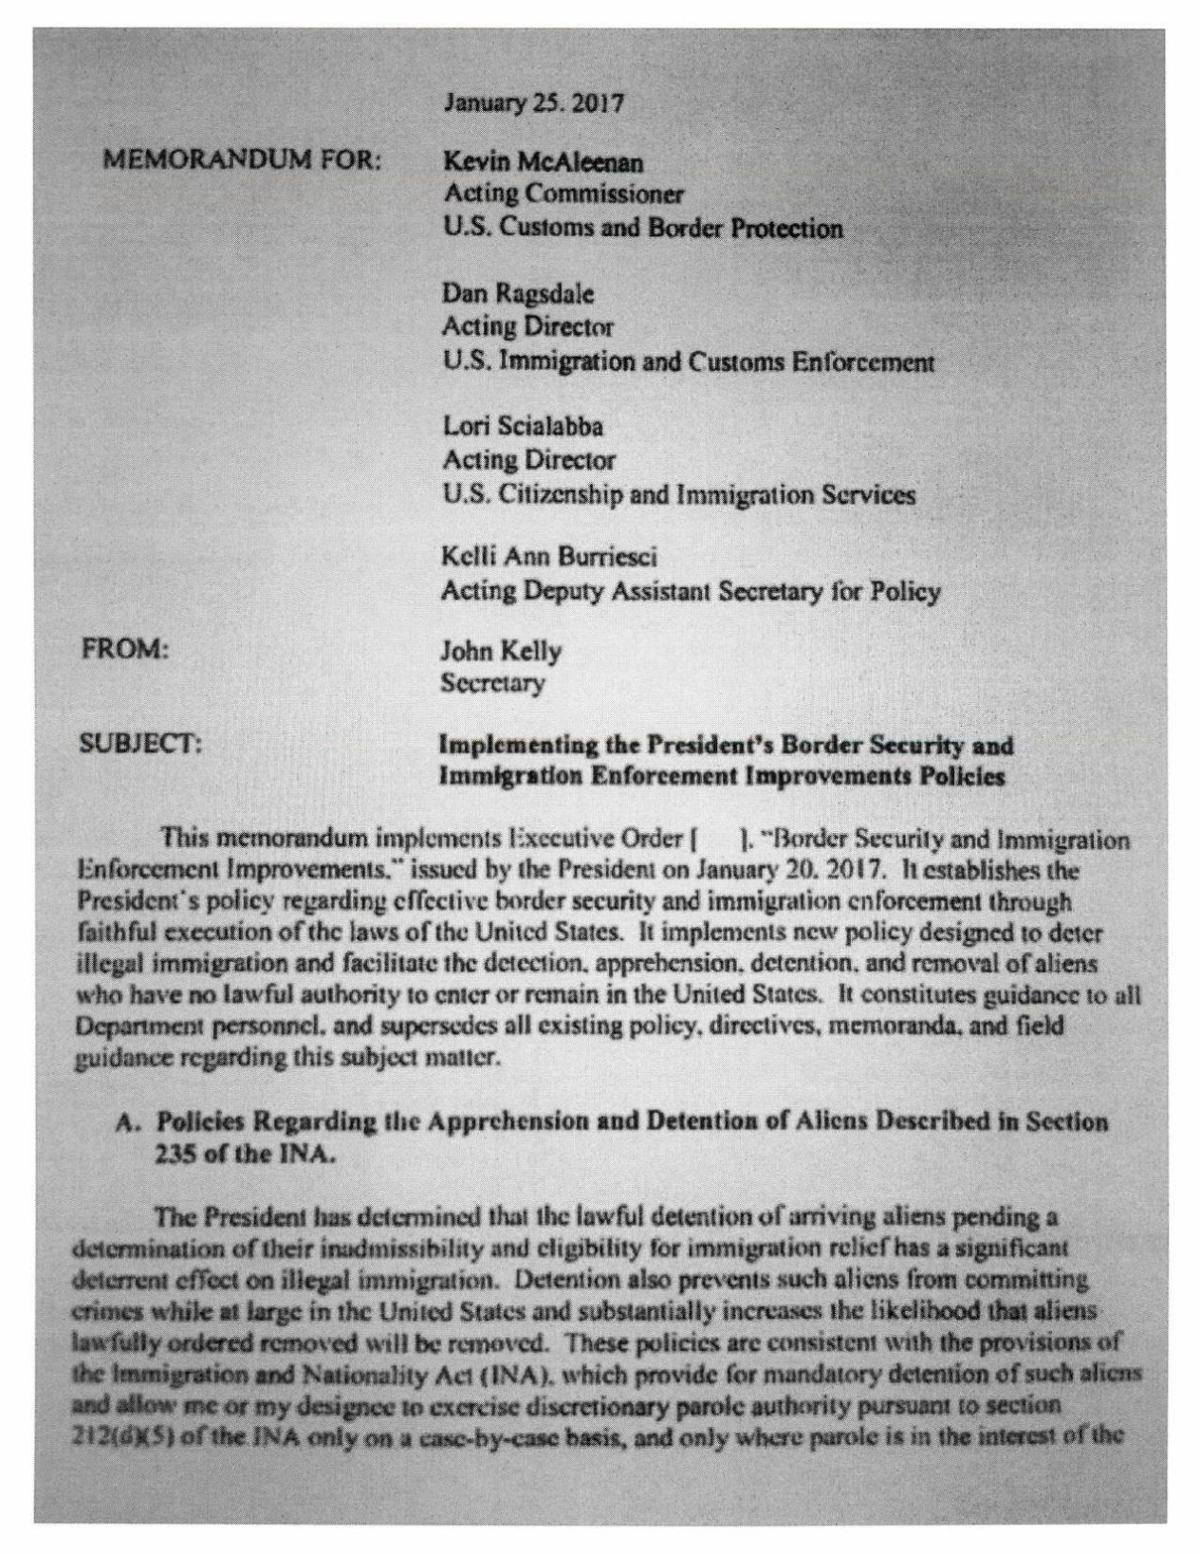 Full document: National Guard draft memo